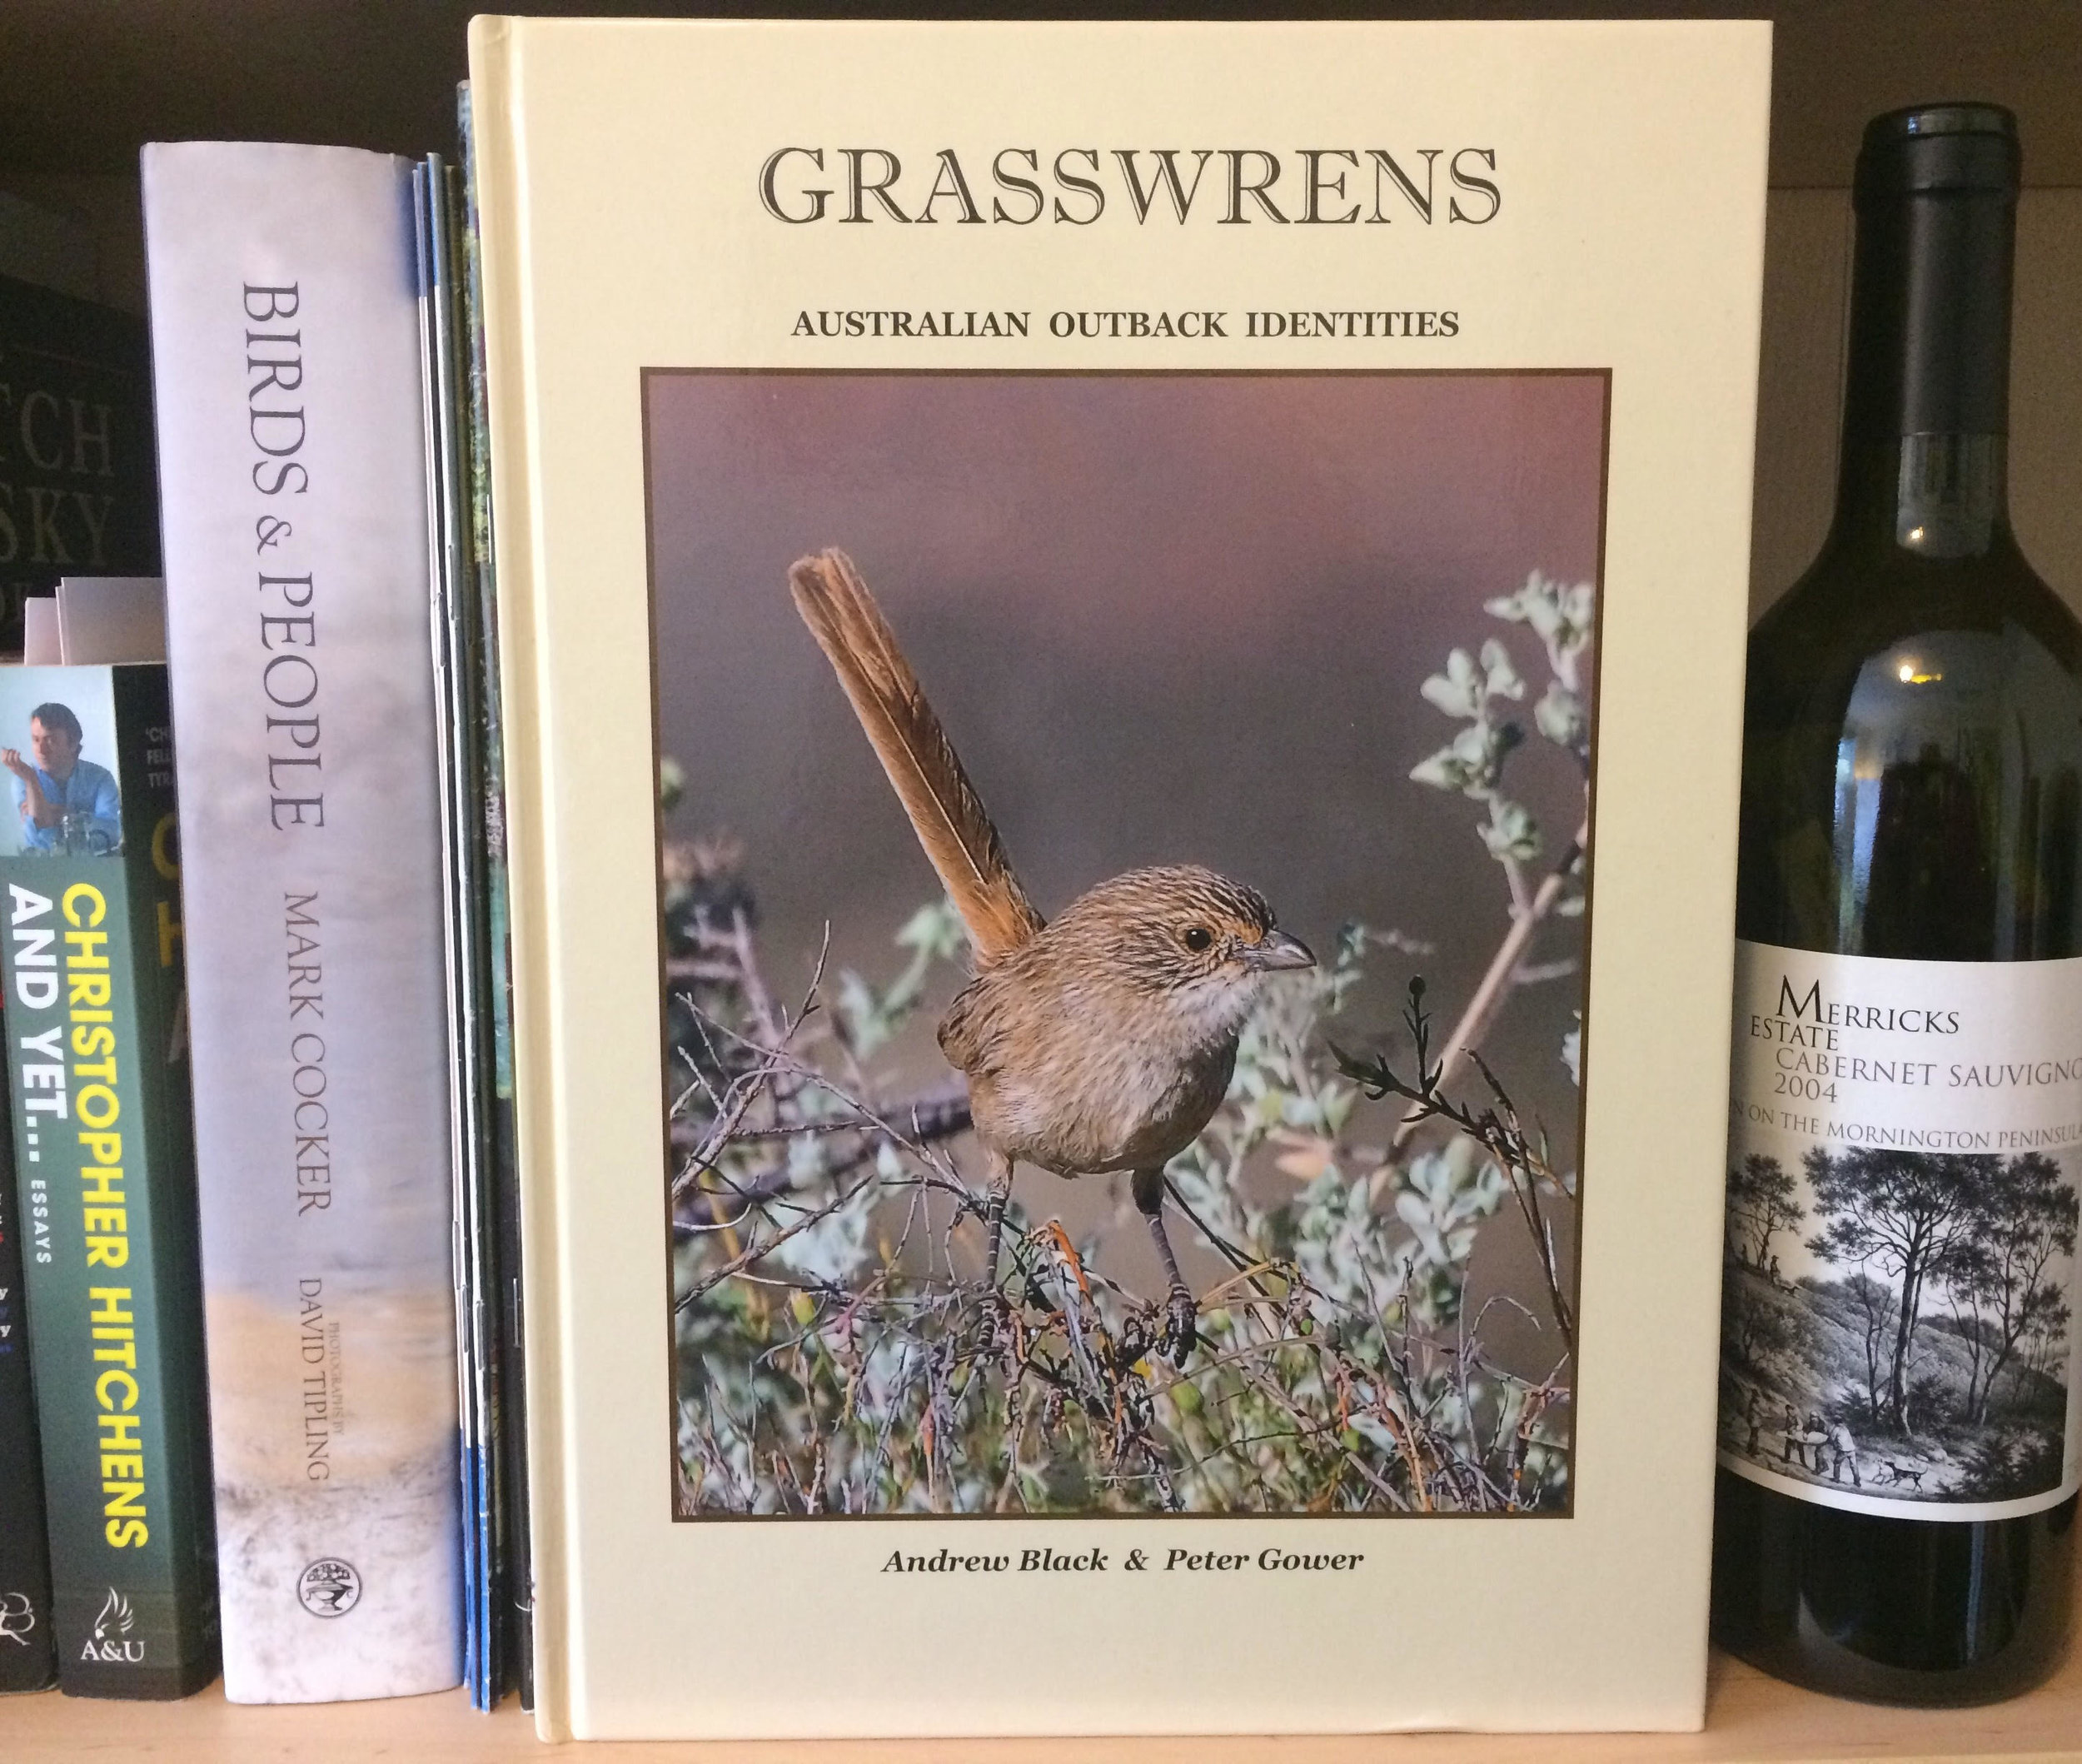 grasswrens aoidentities.jpg